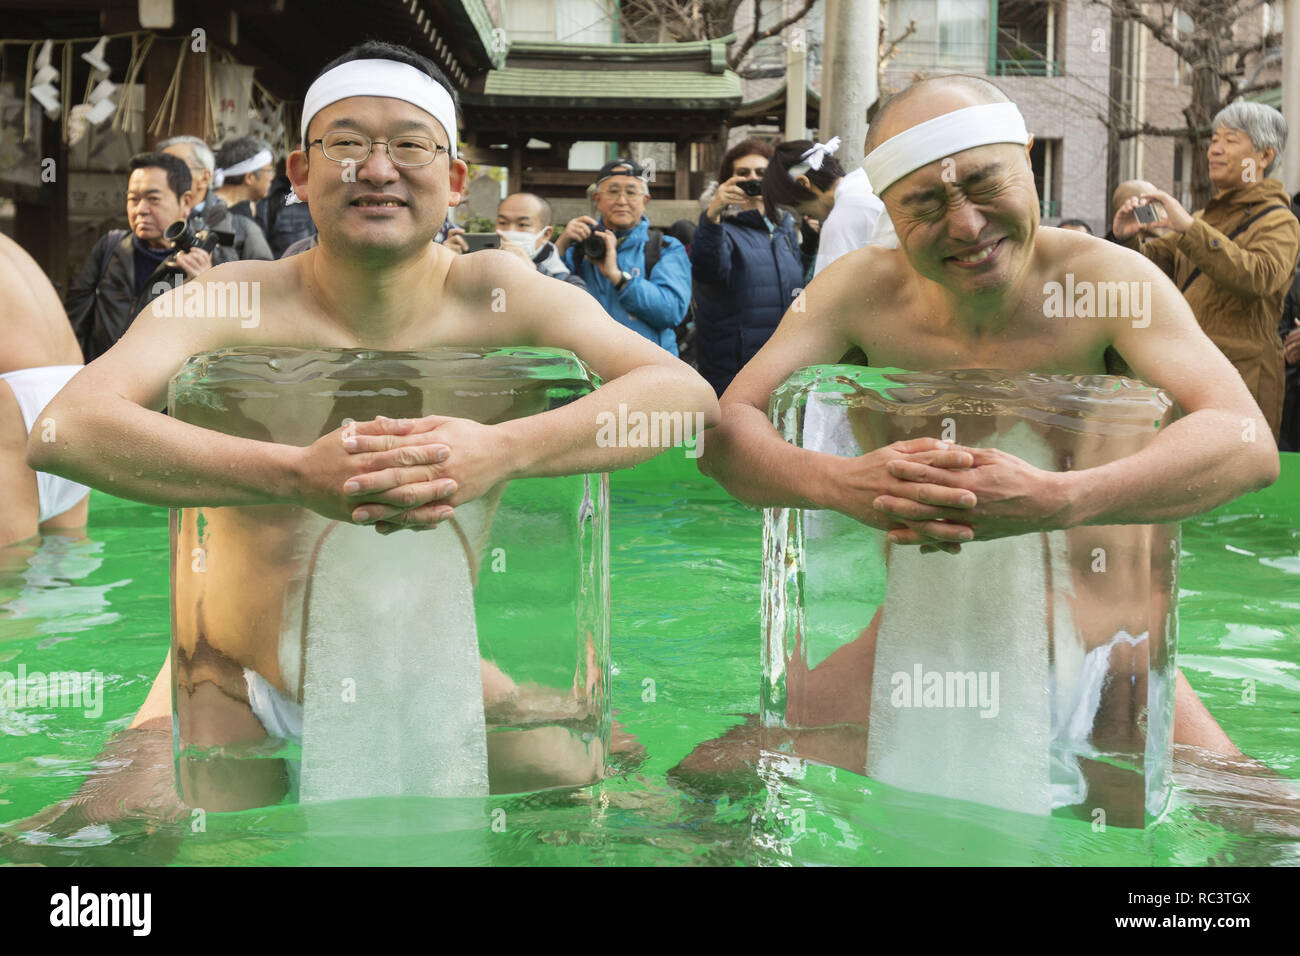 Tokyo, Japan. 13th Jan, 2019. Participants dressed only in loincloths hold two blocks of ice in a pool of freezing-cold water during the annual midwinter-ice water bathing (Kanchu-Suiyoku) purification ceremony at Teppozu Inari Shrine. About 91 brave participants (11 women) joined the purification ritual to pray for a healthy new year. Credit: Rodrigo Reyes Marin/ZUMA Wire/Alamy Live News - Stock Image